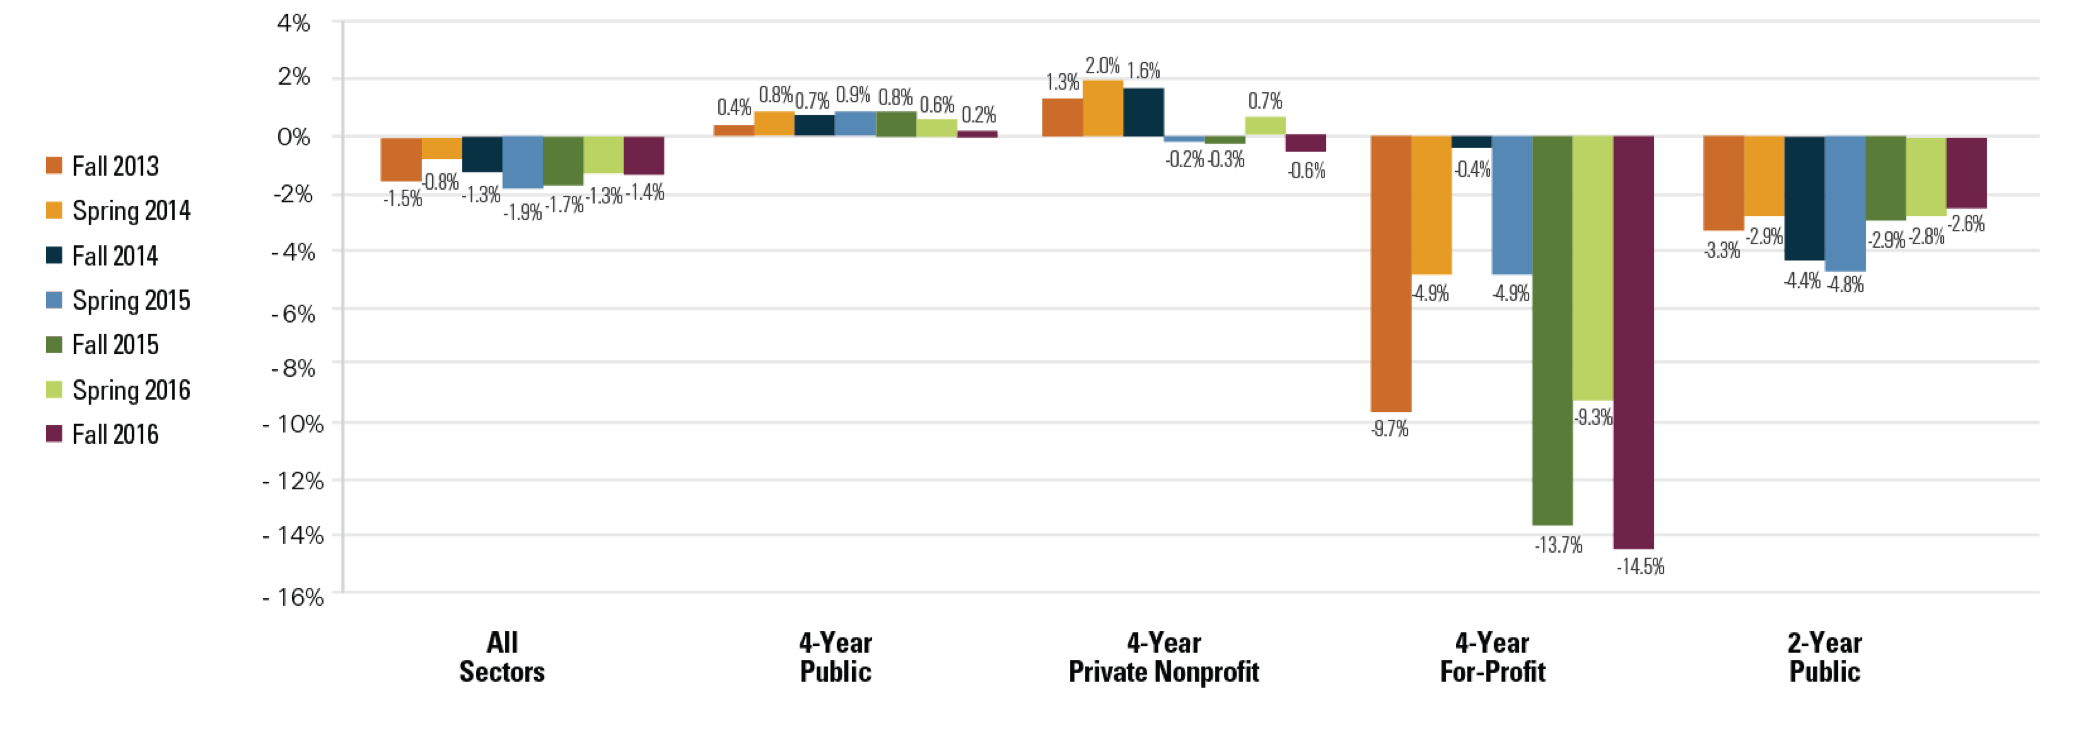 % Change from Previous Year, Enrollment by Sector (Title IV, Degree-Granting Institutions)